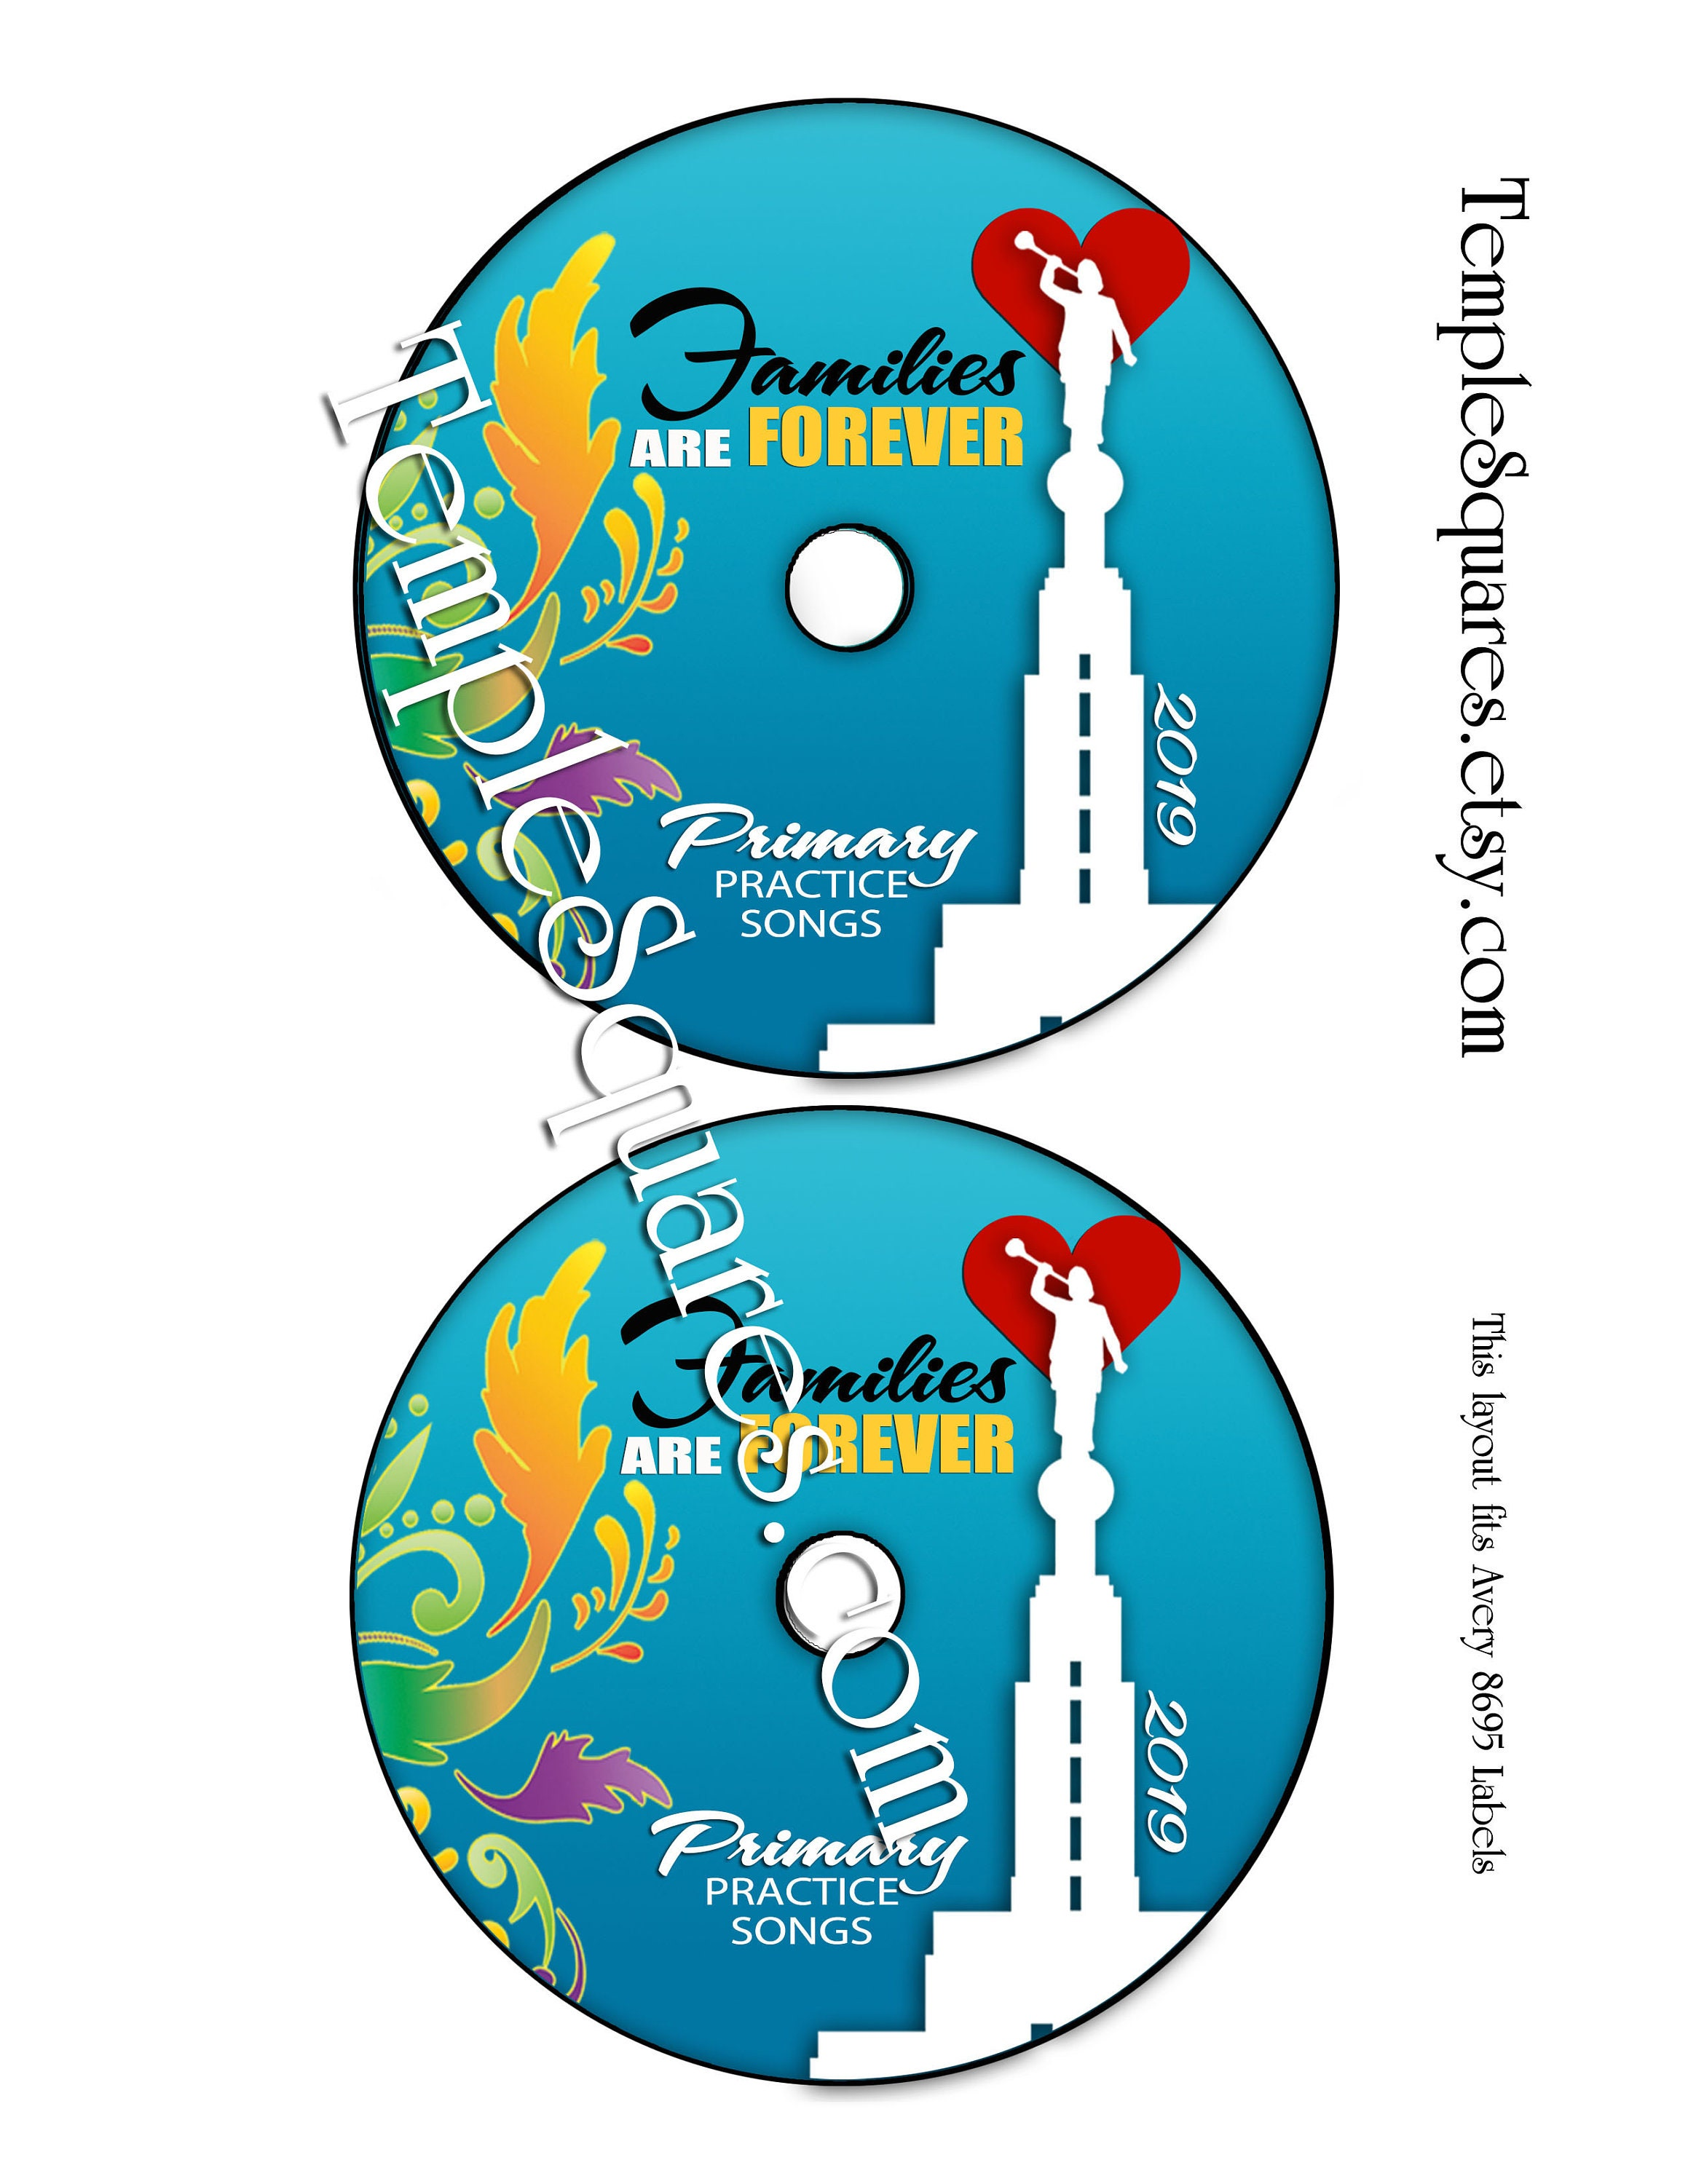 image about Printable Cd Labels identify Printable CD labels for 2019 Childrens Principal Software